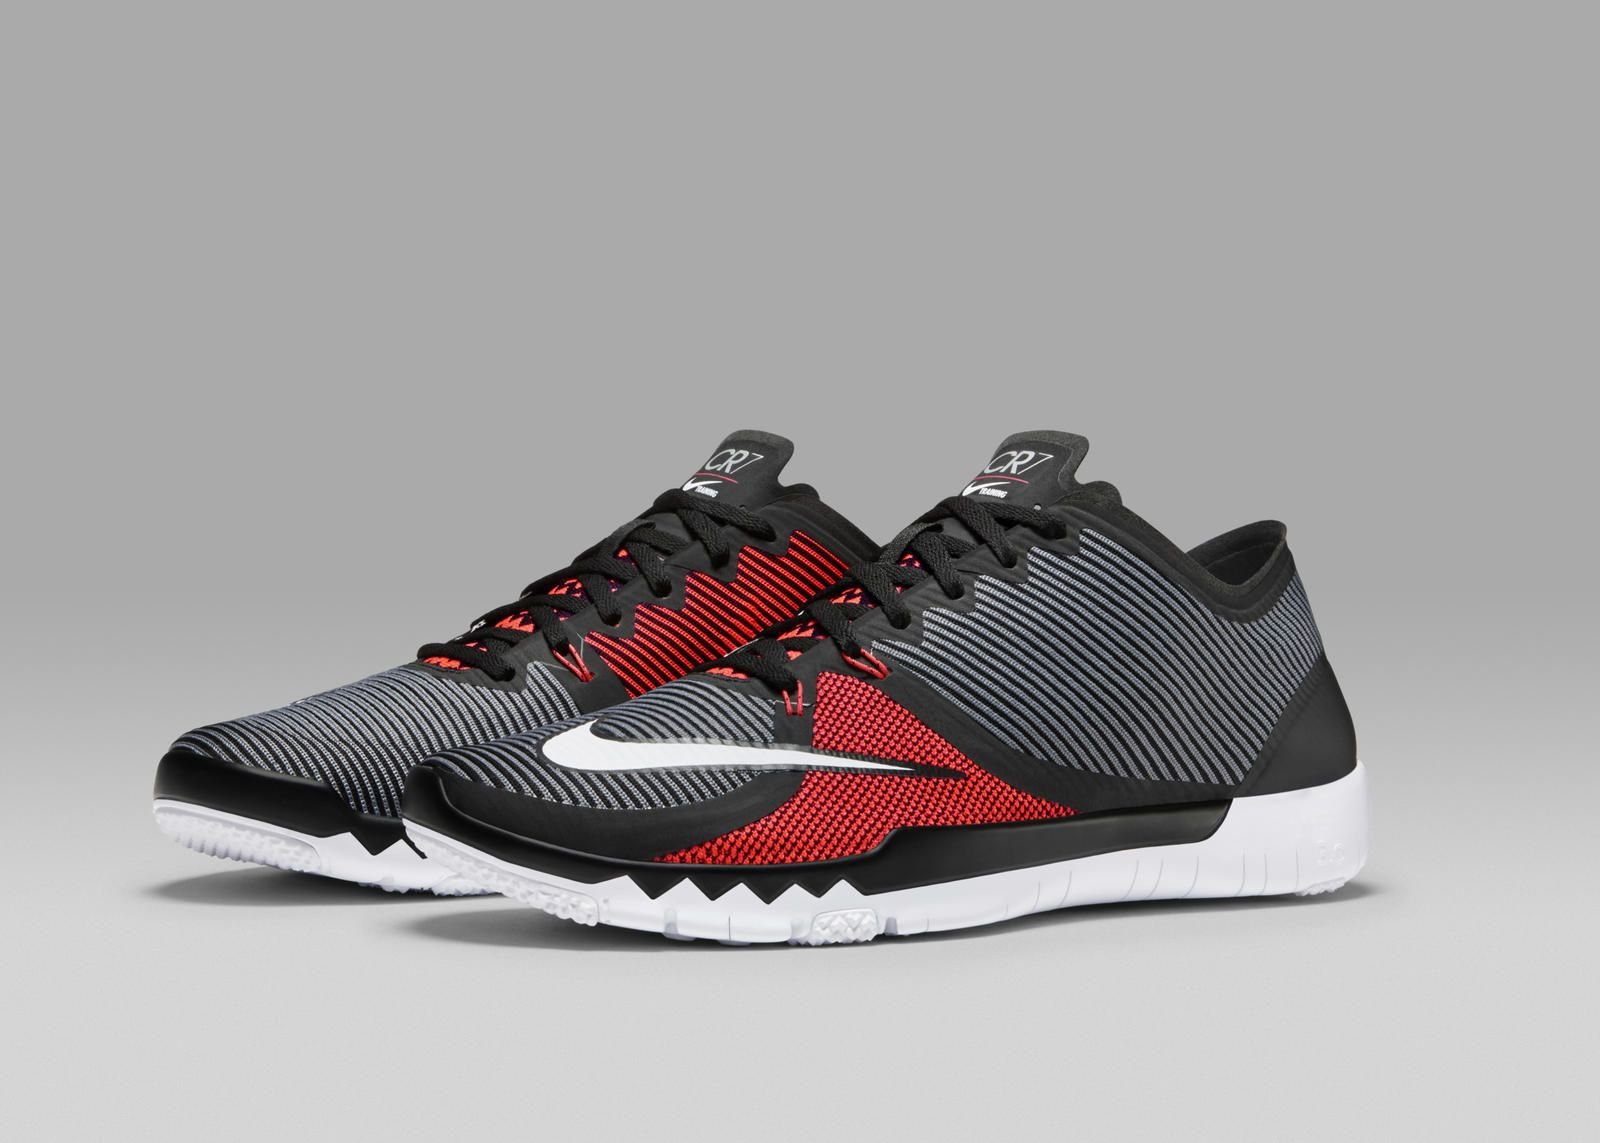 nike free trainer 3.0 v3 cr7 kaufen in english